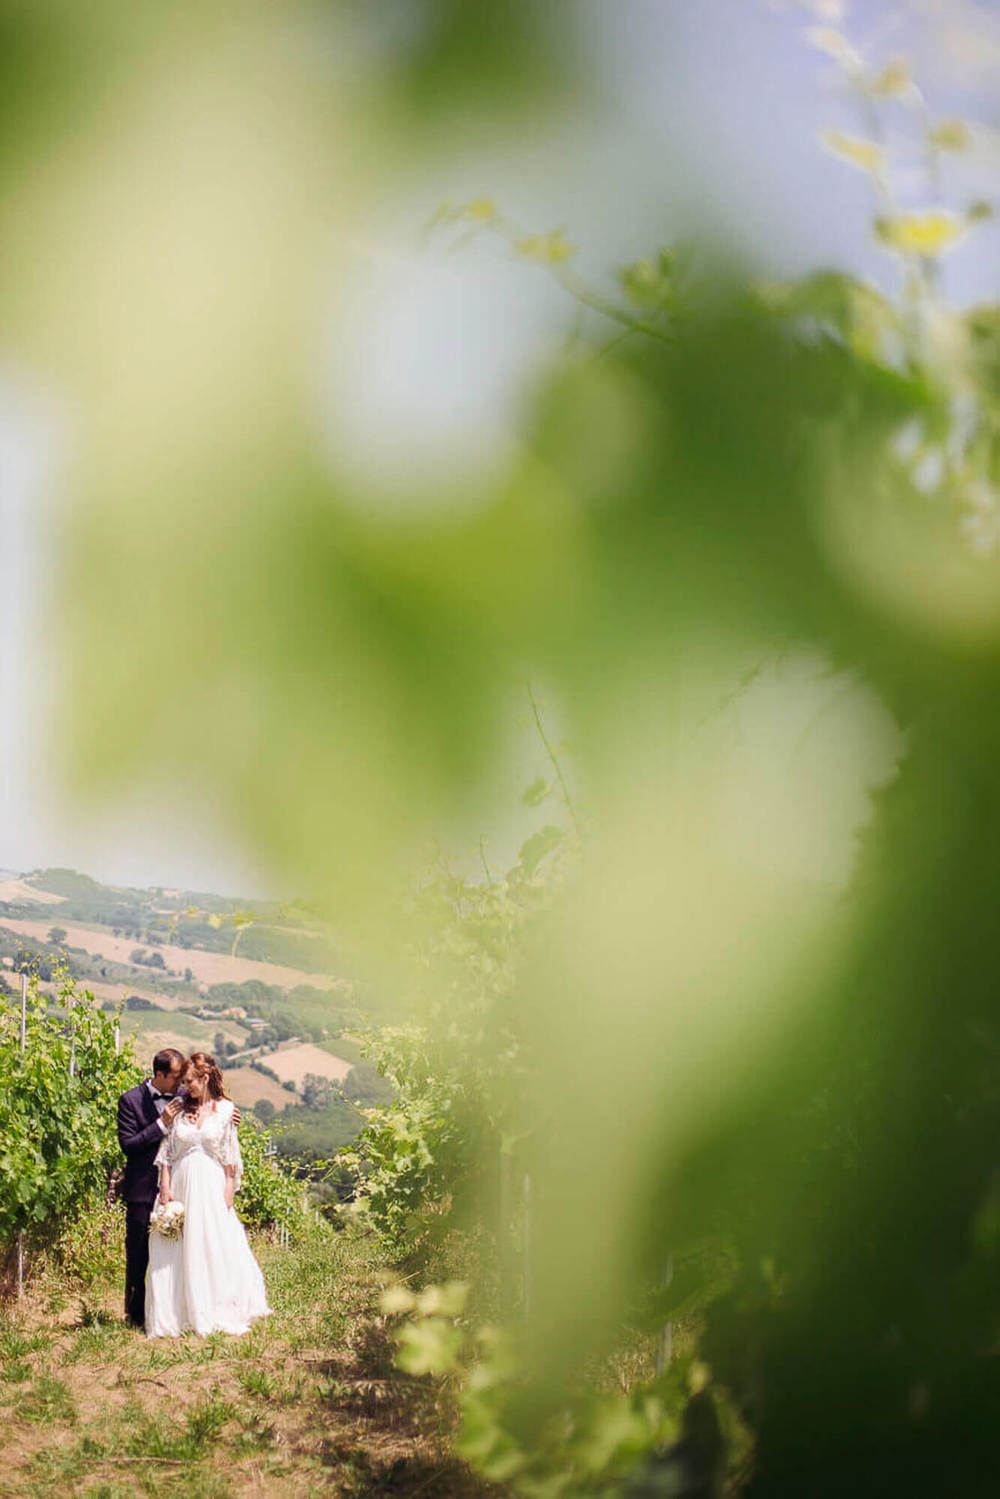 109_wedding_vino_ortezzano.jpg